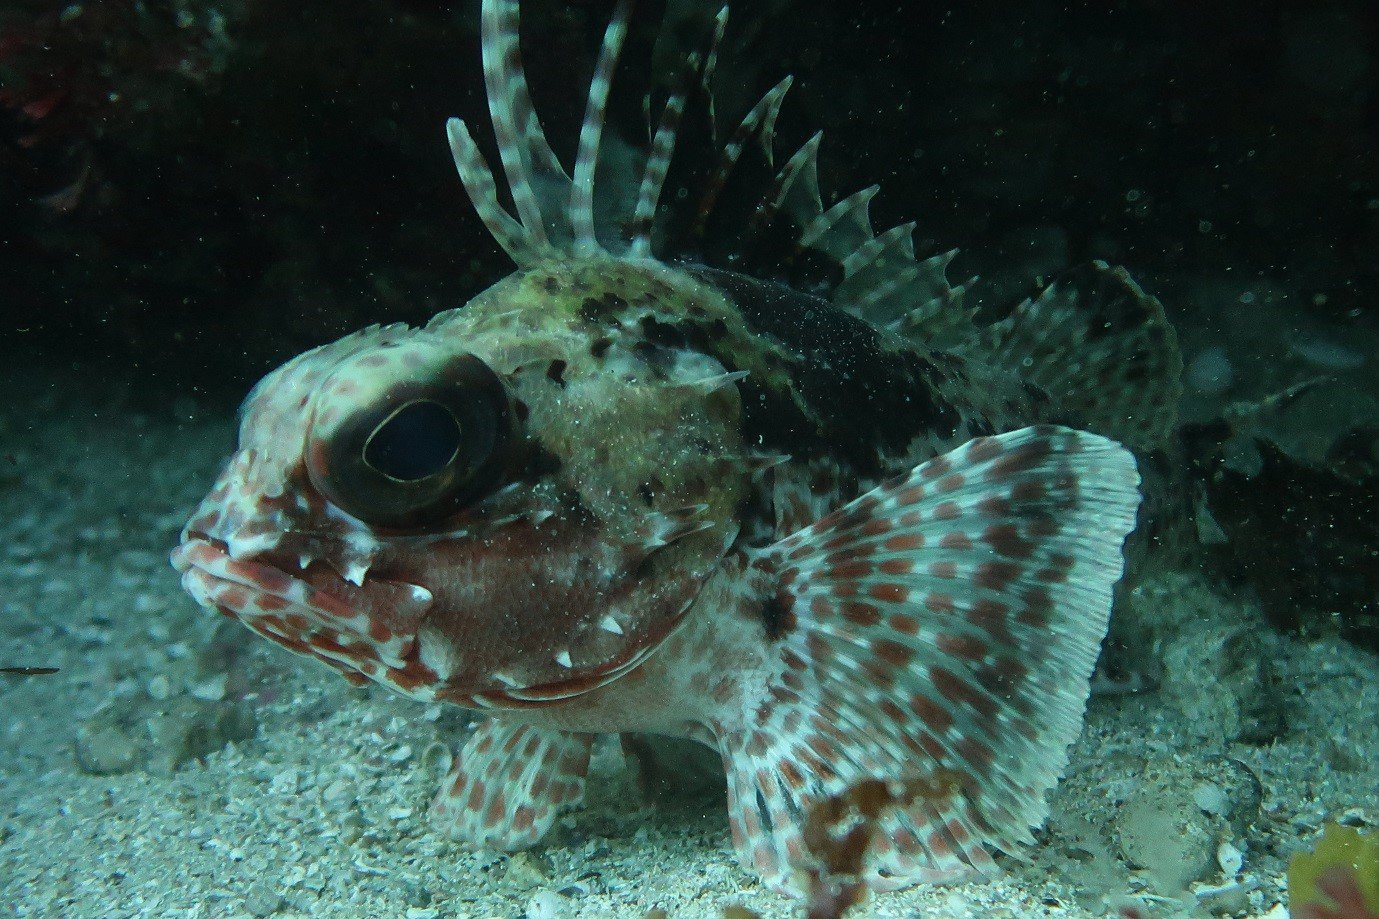 Bighead Gurnard Perch (Neosebastes pandus), a temperate species, noted here sheltering from the divers